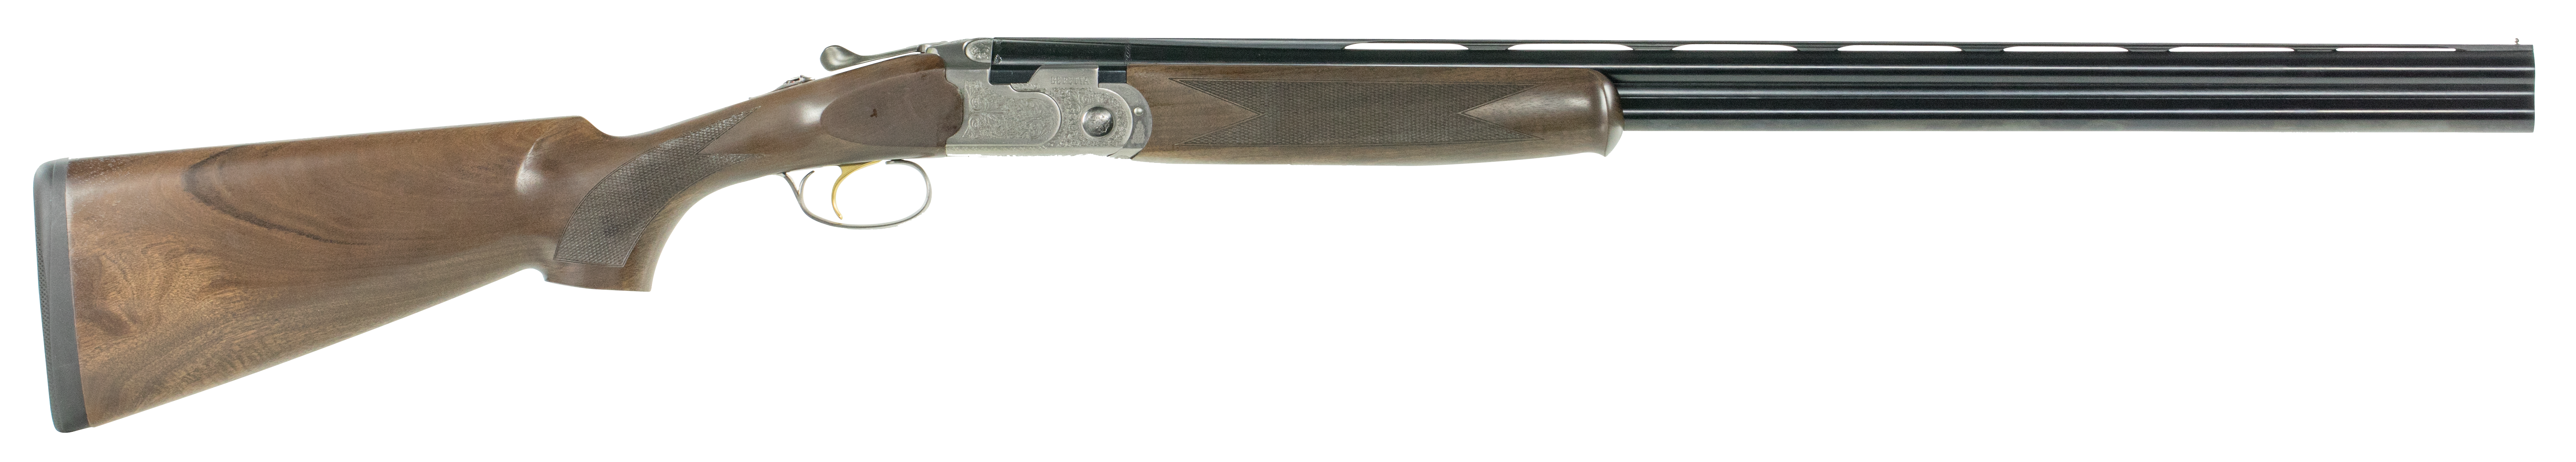 Beretta 686 Silver Pigeon I Combo Over/Under Shotgun 3'' 20/28 Gauge 28'' Silver Engraved - Walnut